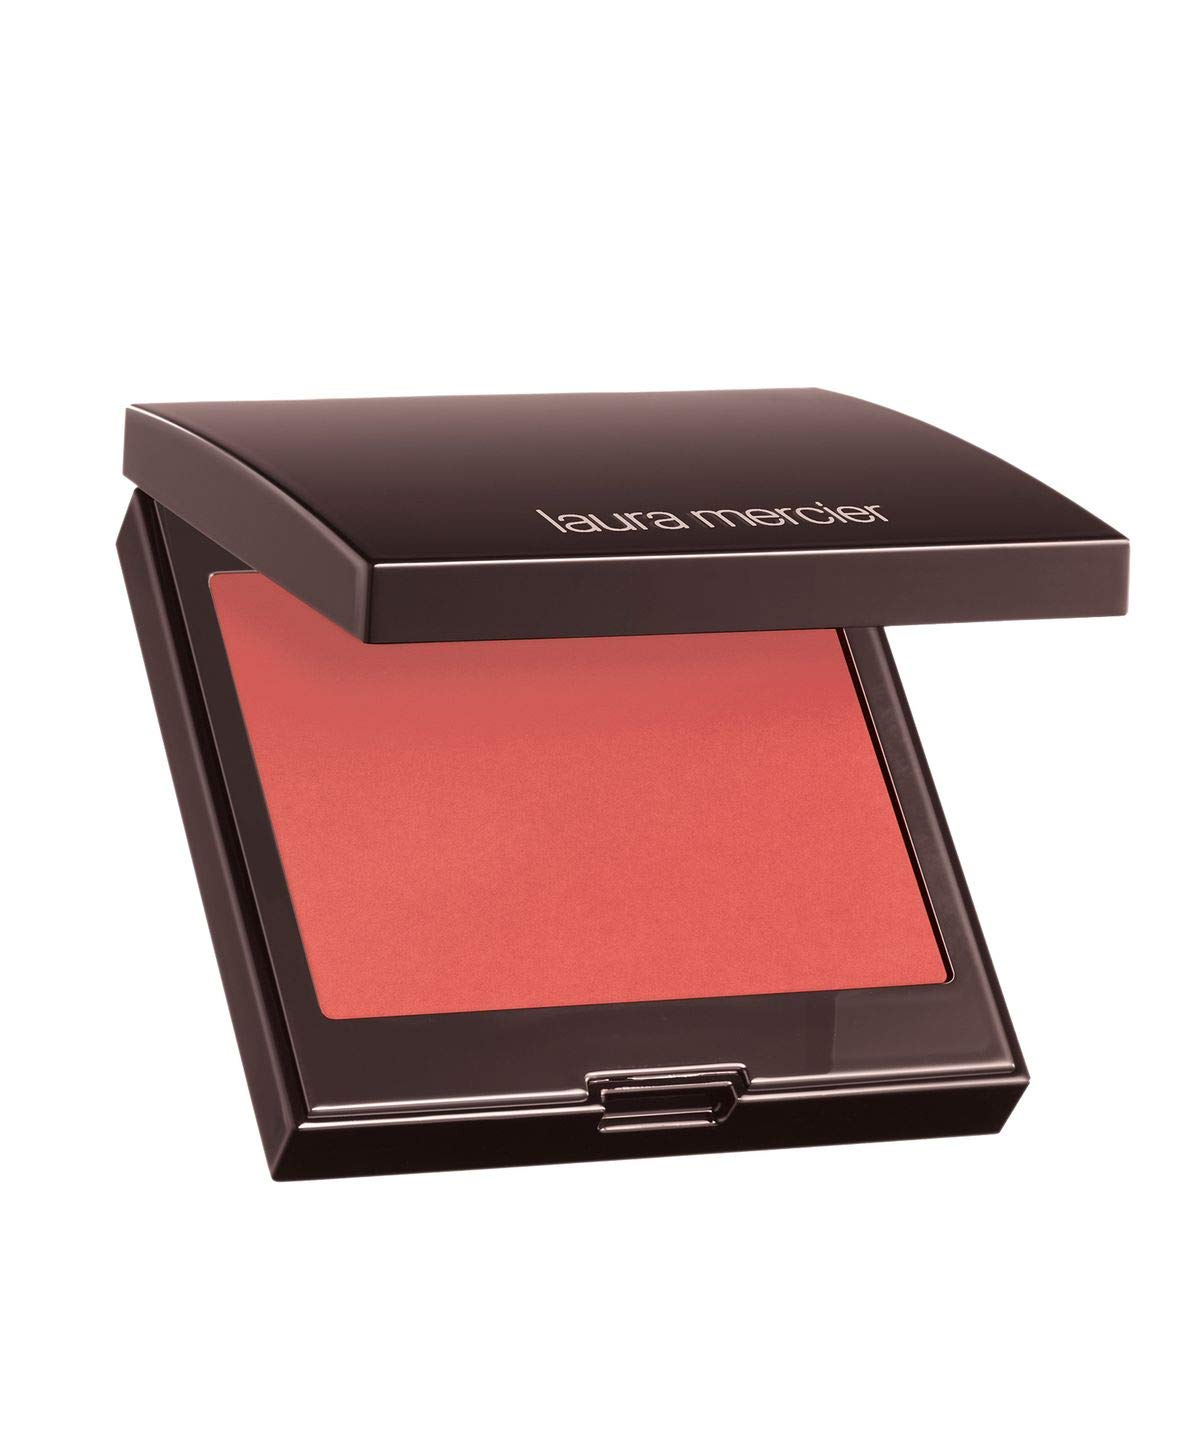 Laura Mercier Blush Colour Infusion, Rose